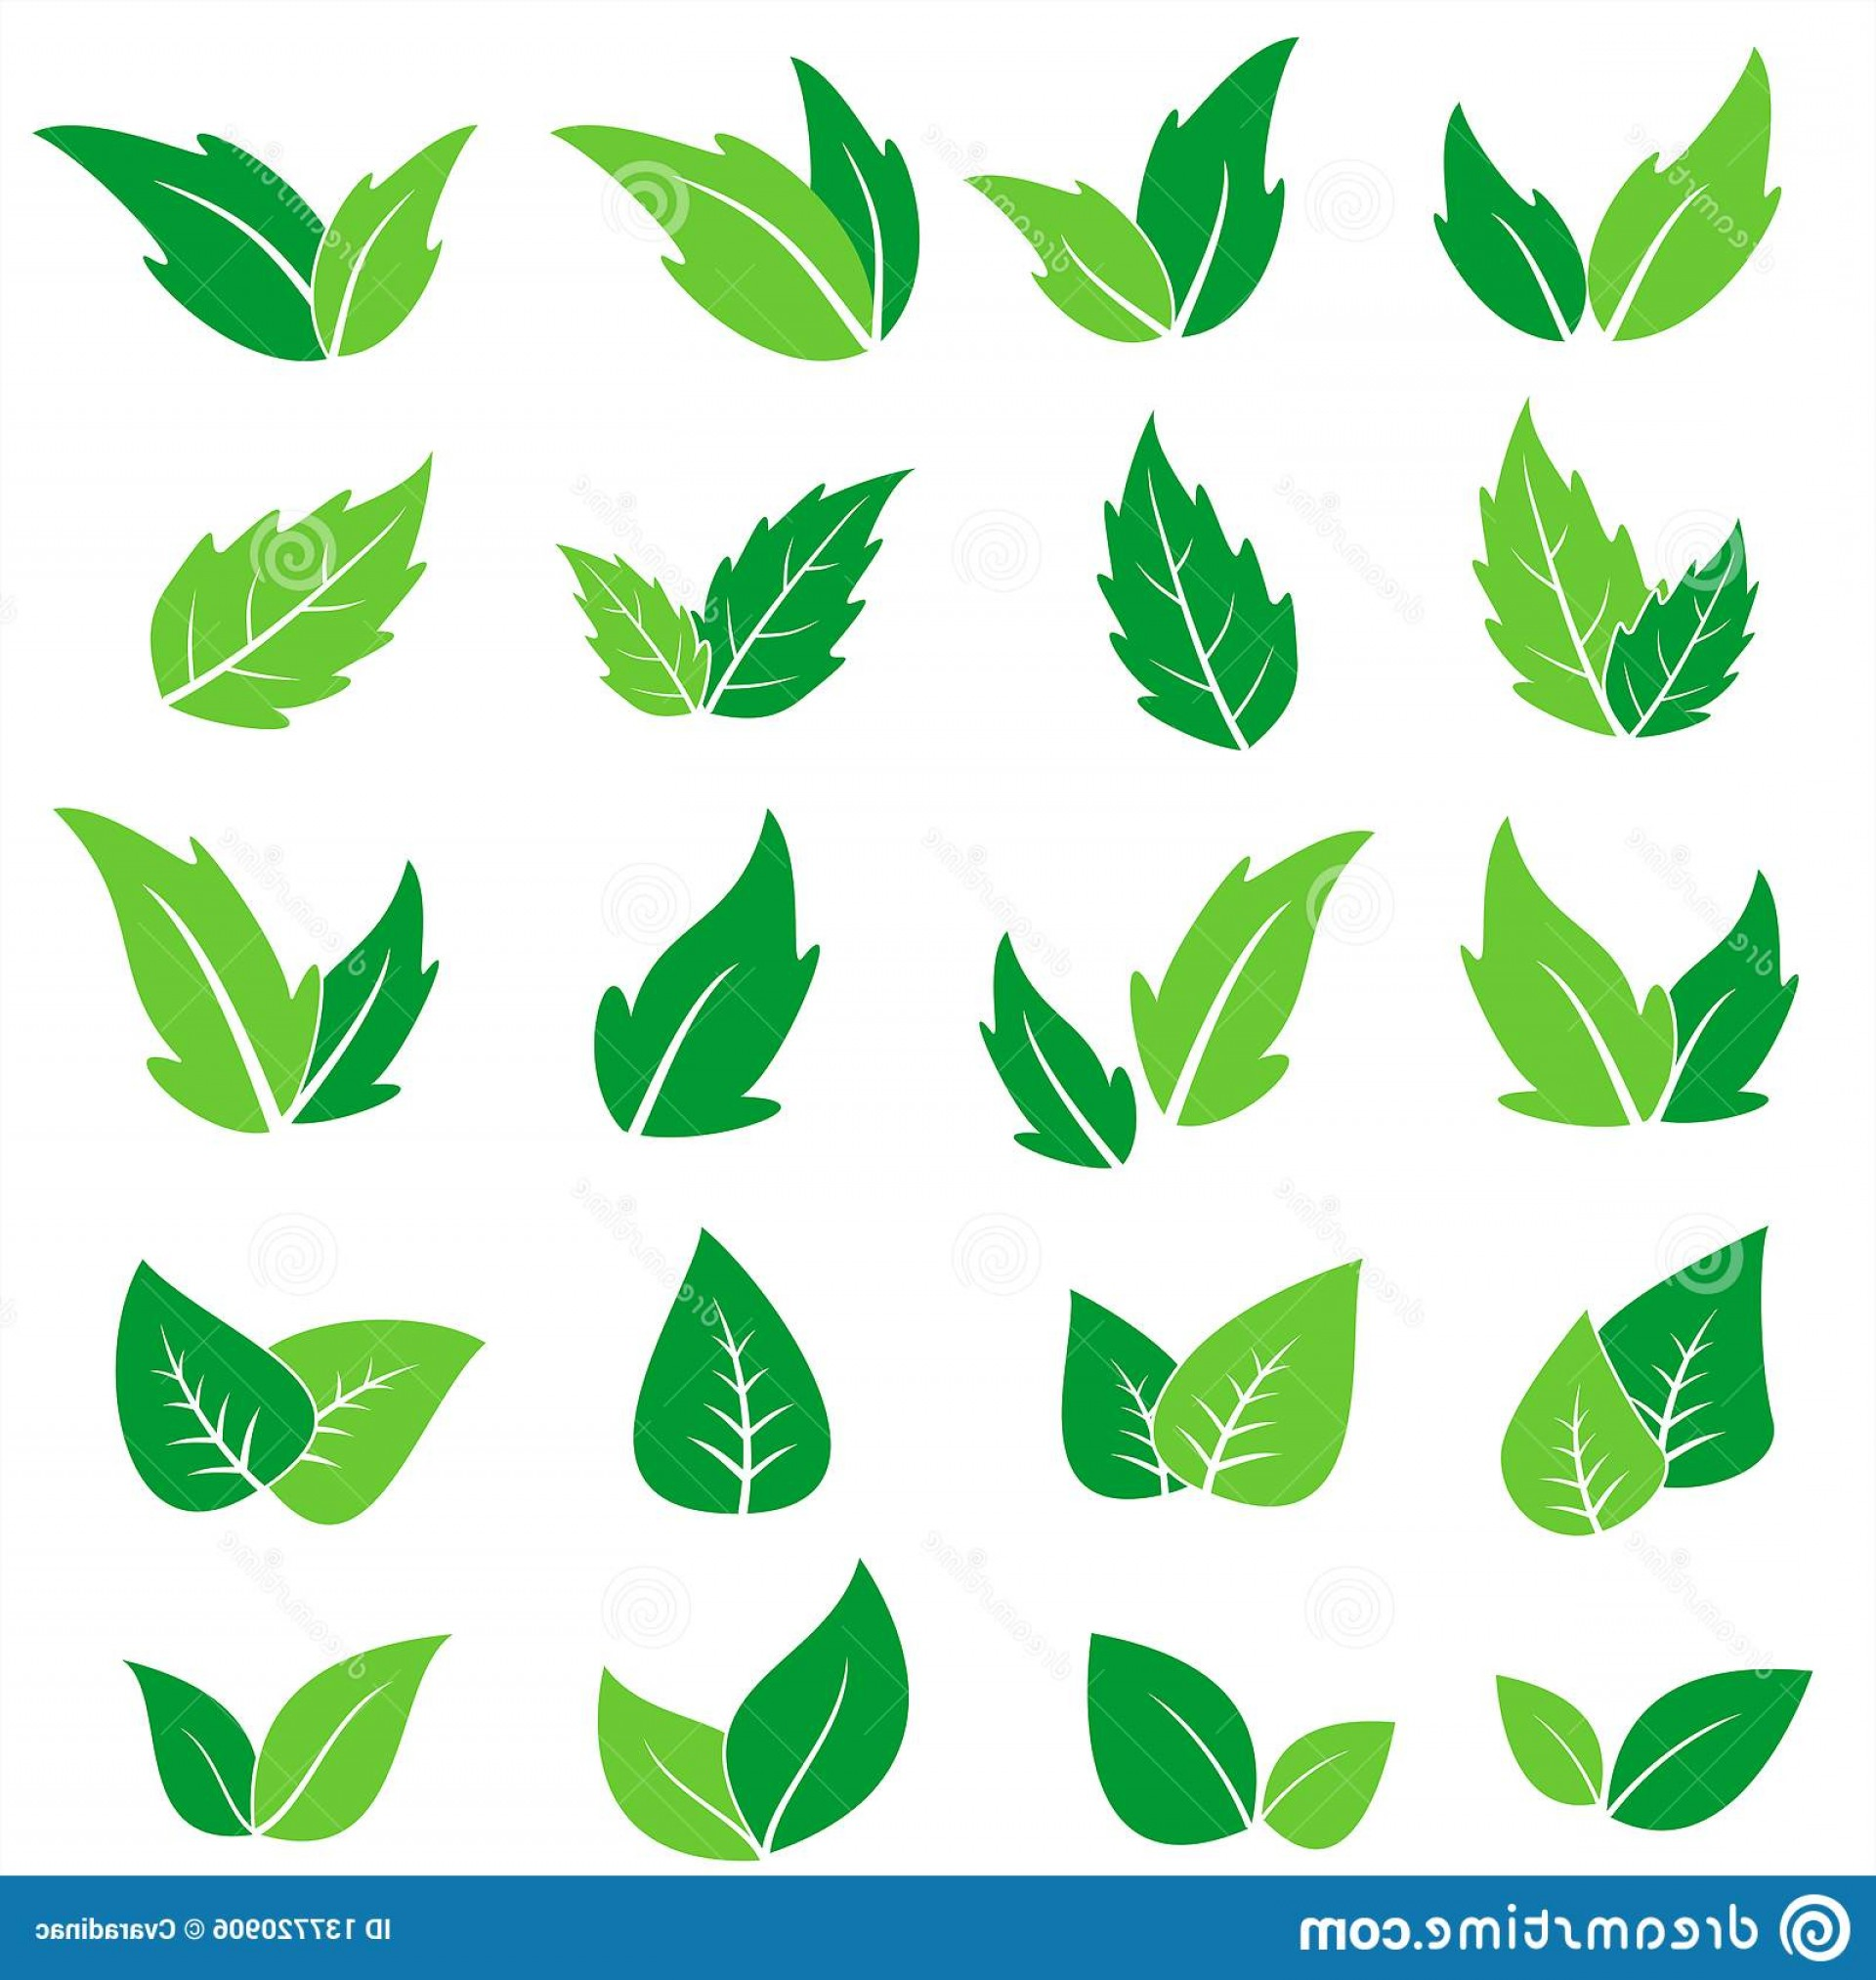 Vector Leaf Graphicd: Design Vector Graphic Natural Leaf Clipart Green Leaf Icons Set Vector Graphic Illustration Image